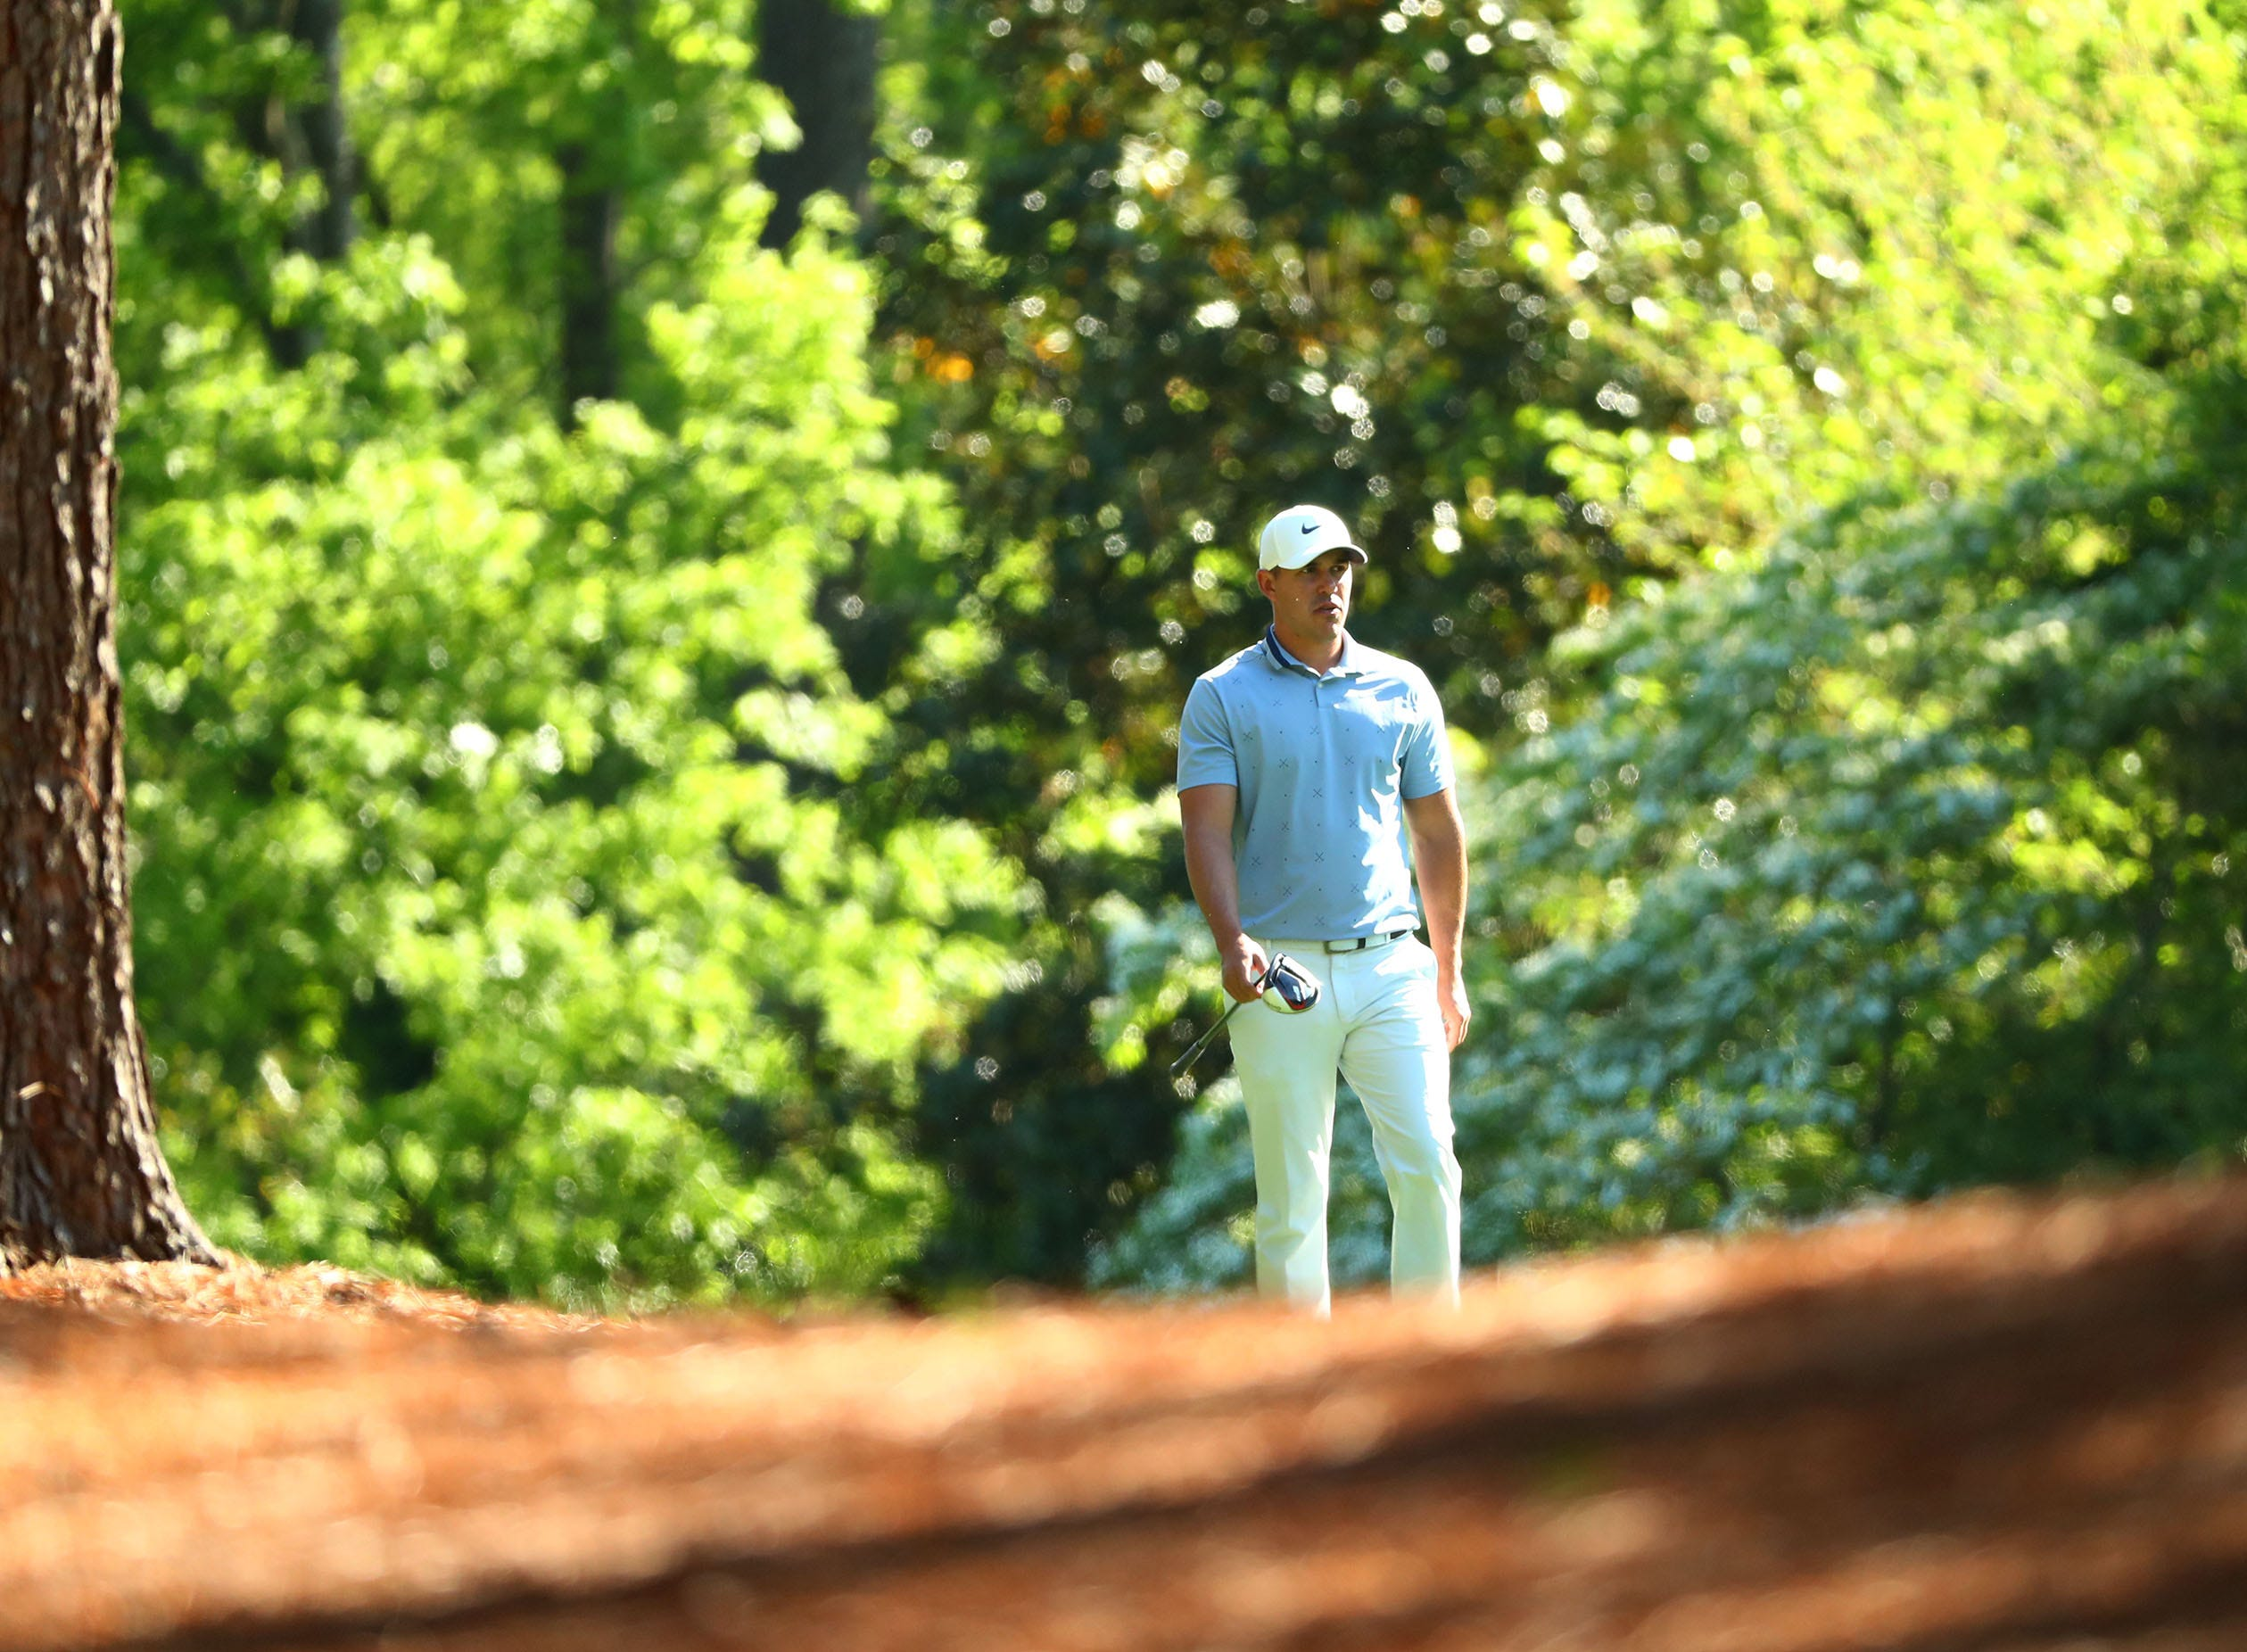 Apr 10, 2019; Augusta, GA, USA; Brooks Koepka walks to his ball on the 11th hole during a practice round for The Masters golf tournament at Augusta National Golf Club. Mandatory Credit: Rob Schumacher-USA TODAY Sports